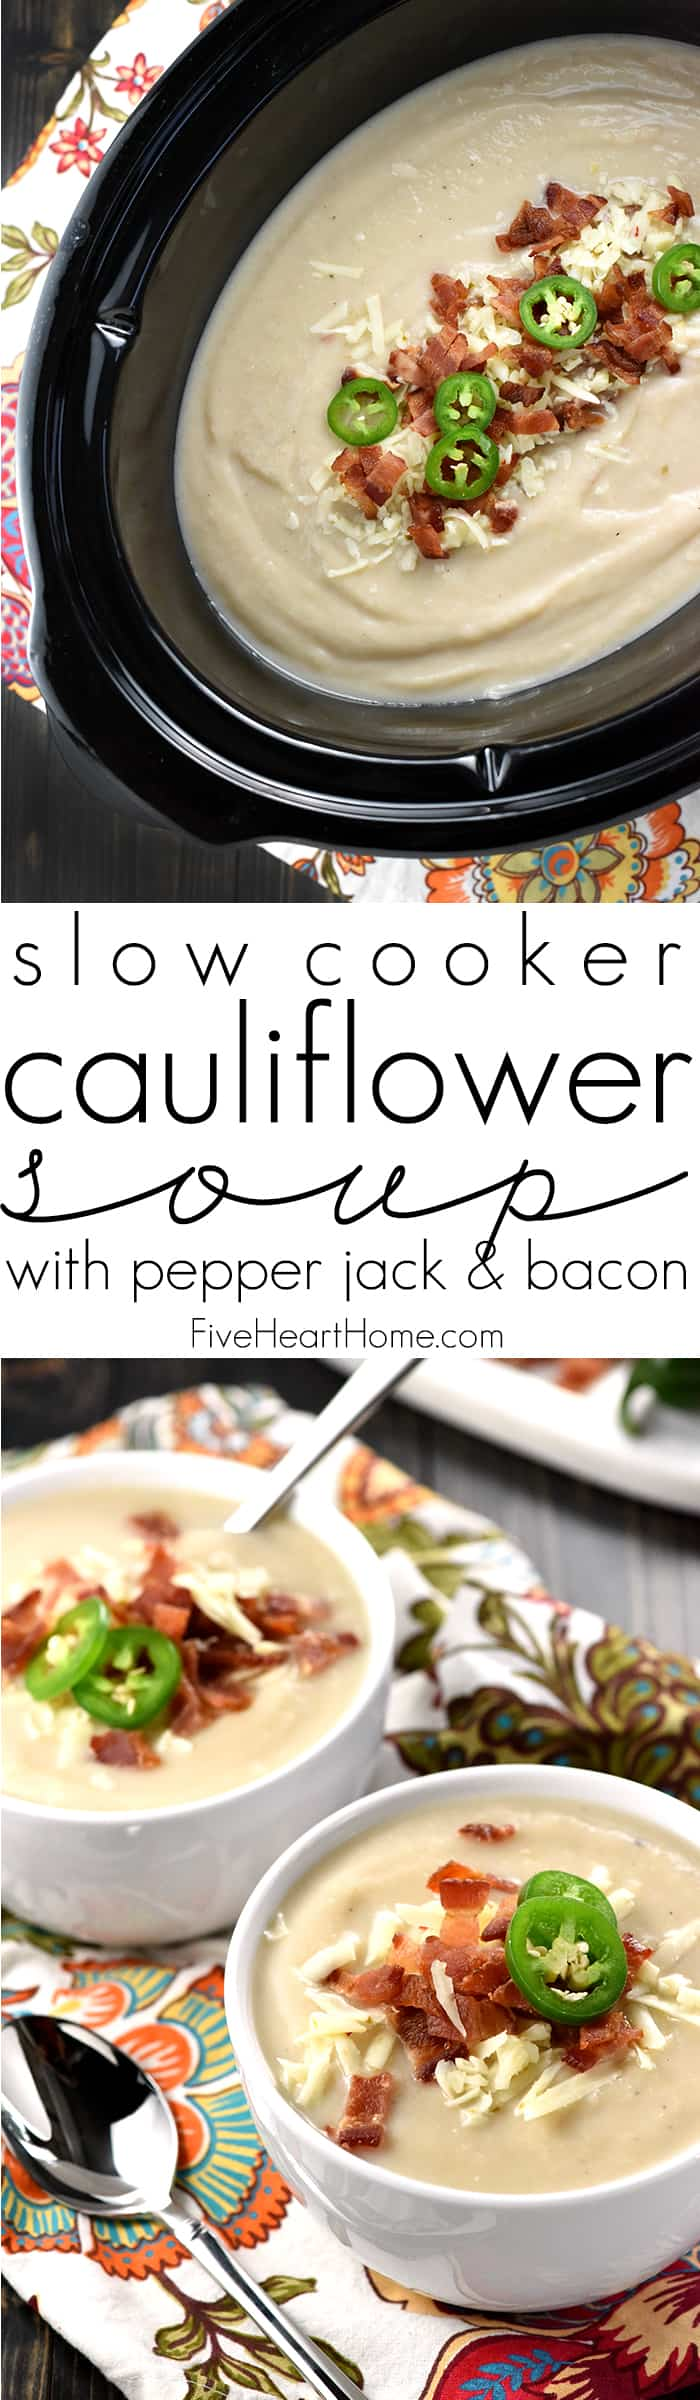 Slow Cooker Cauliflower Soup with Pepper Jack & Bacon ~ a creamy, silky, crock pot soup that balances healthy, vitamin-packed cauliflower with zesty cheese and decadent bacon...and since it starts with frozen cauliflower, it couldn't be any simpler to make! | FiveHeartHome.com